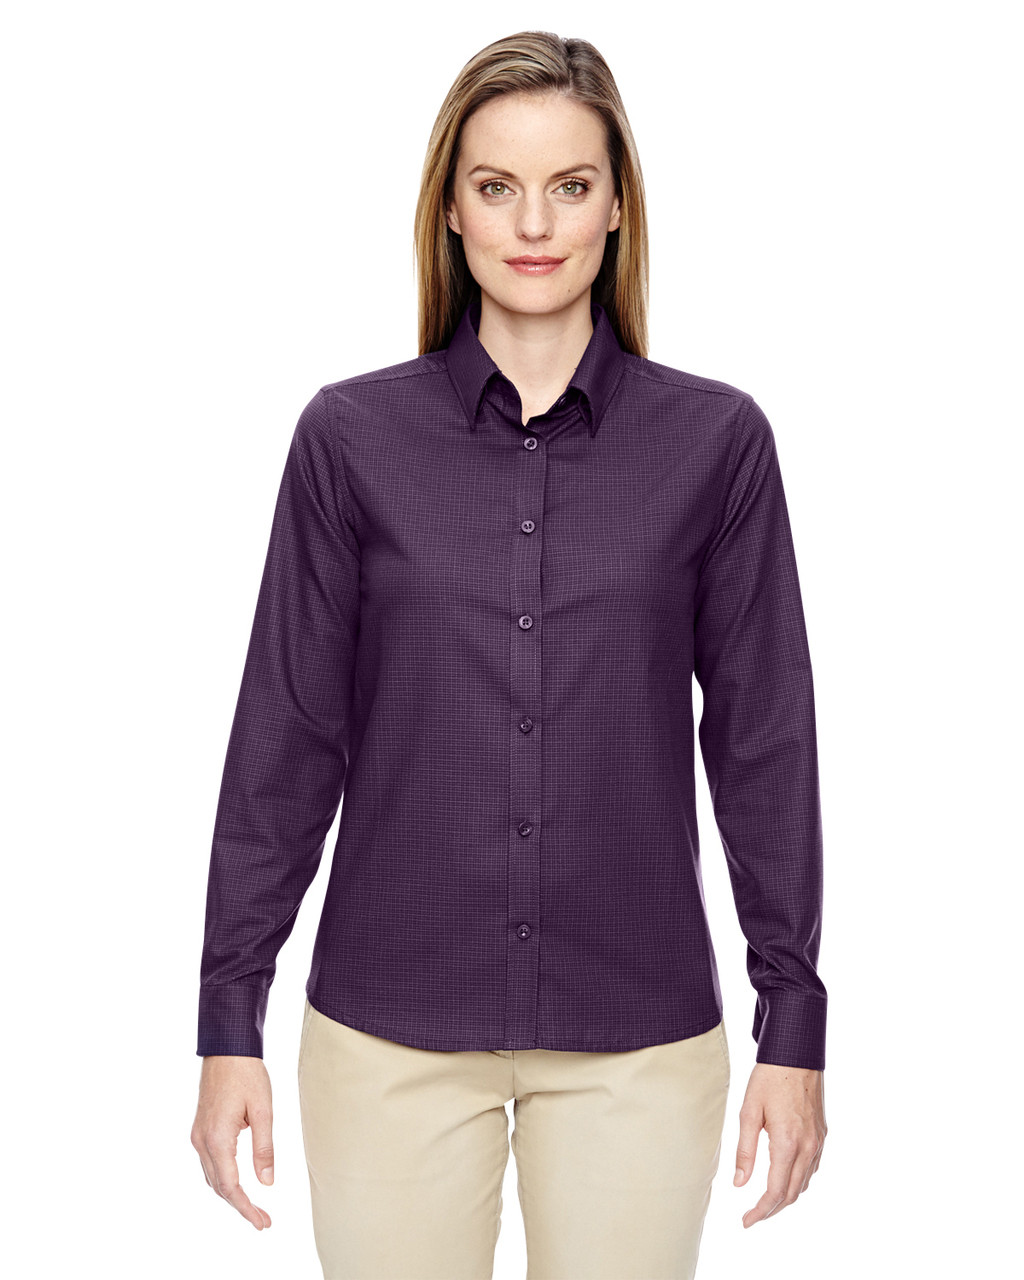 Mulbry Purpl - 77043 North End Paramount Wrinkle-Resistant Cotton Blend Twill Checkered Shirt | Blankclothing.ca